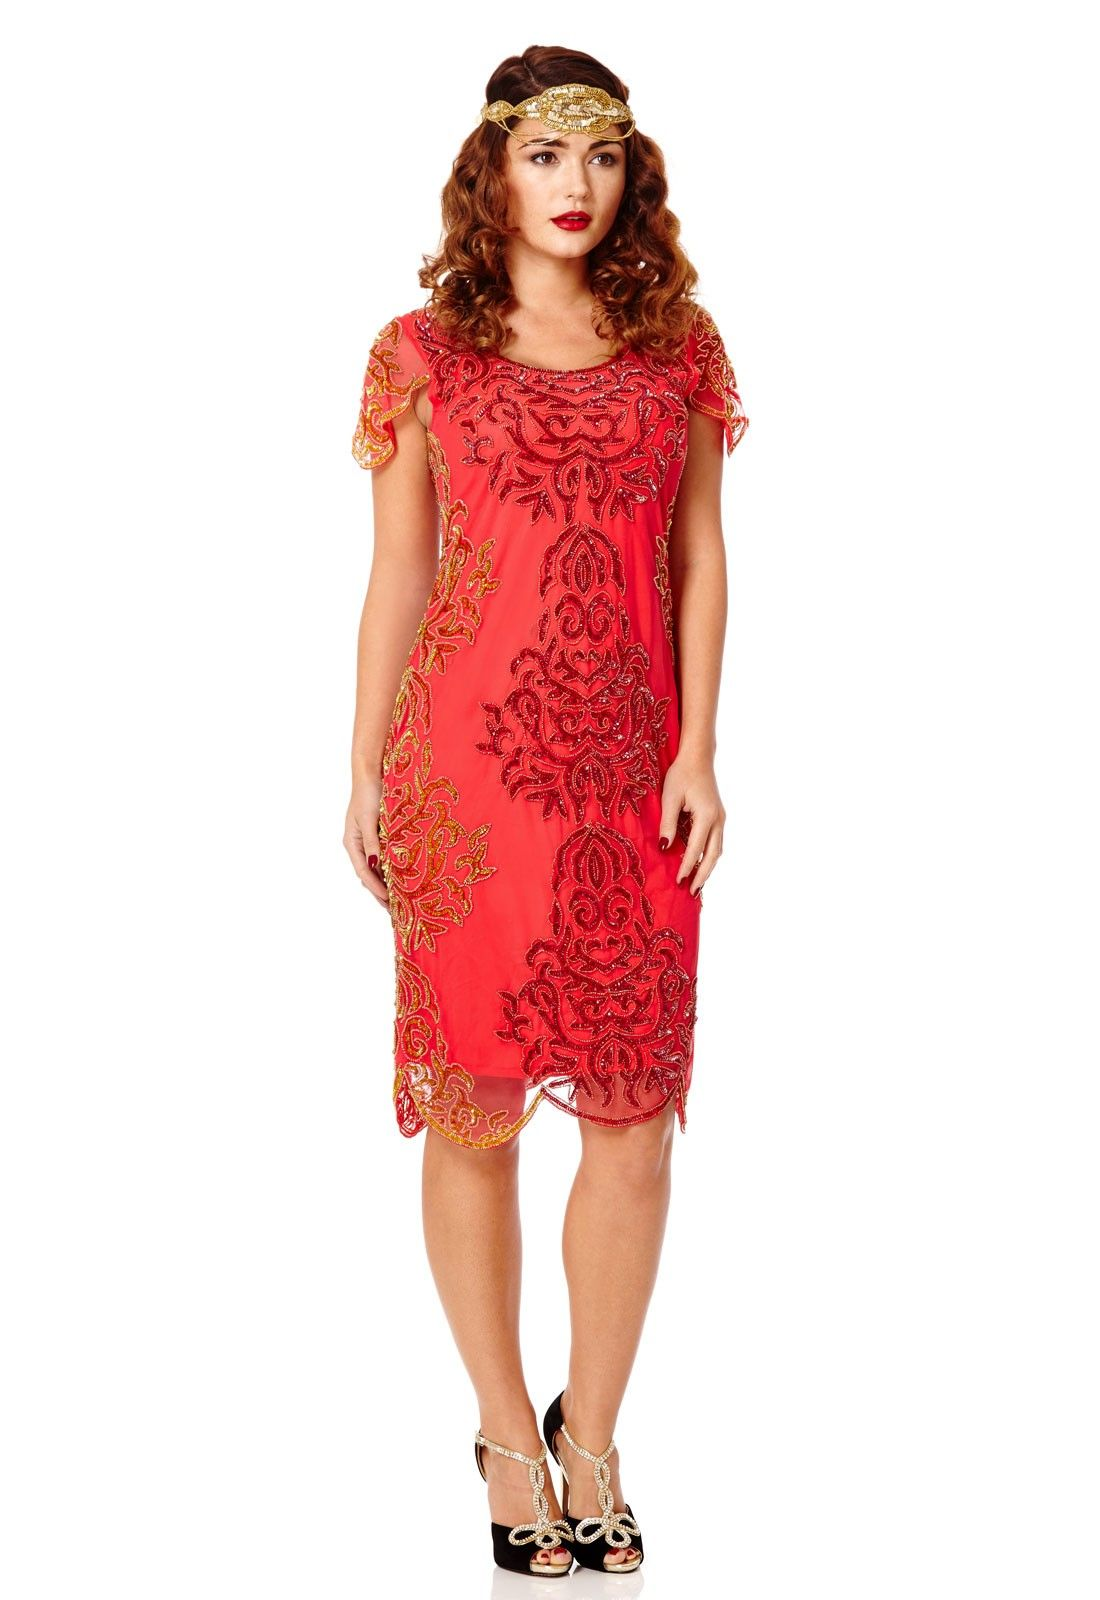 2426572f3ccb98 This stunning red flapper dress with intricate gold bead work and a  scalloped hem captures Daisy